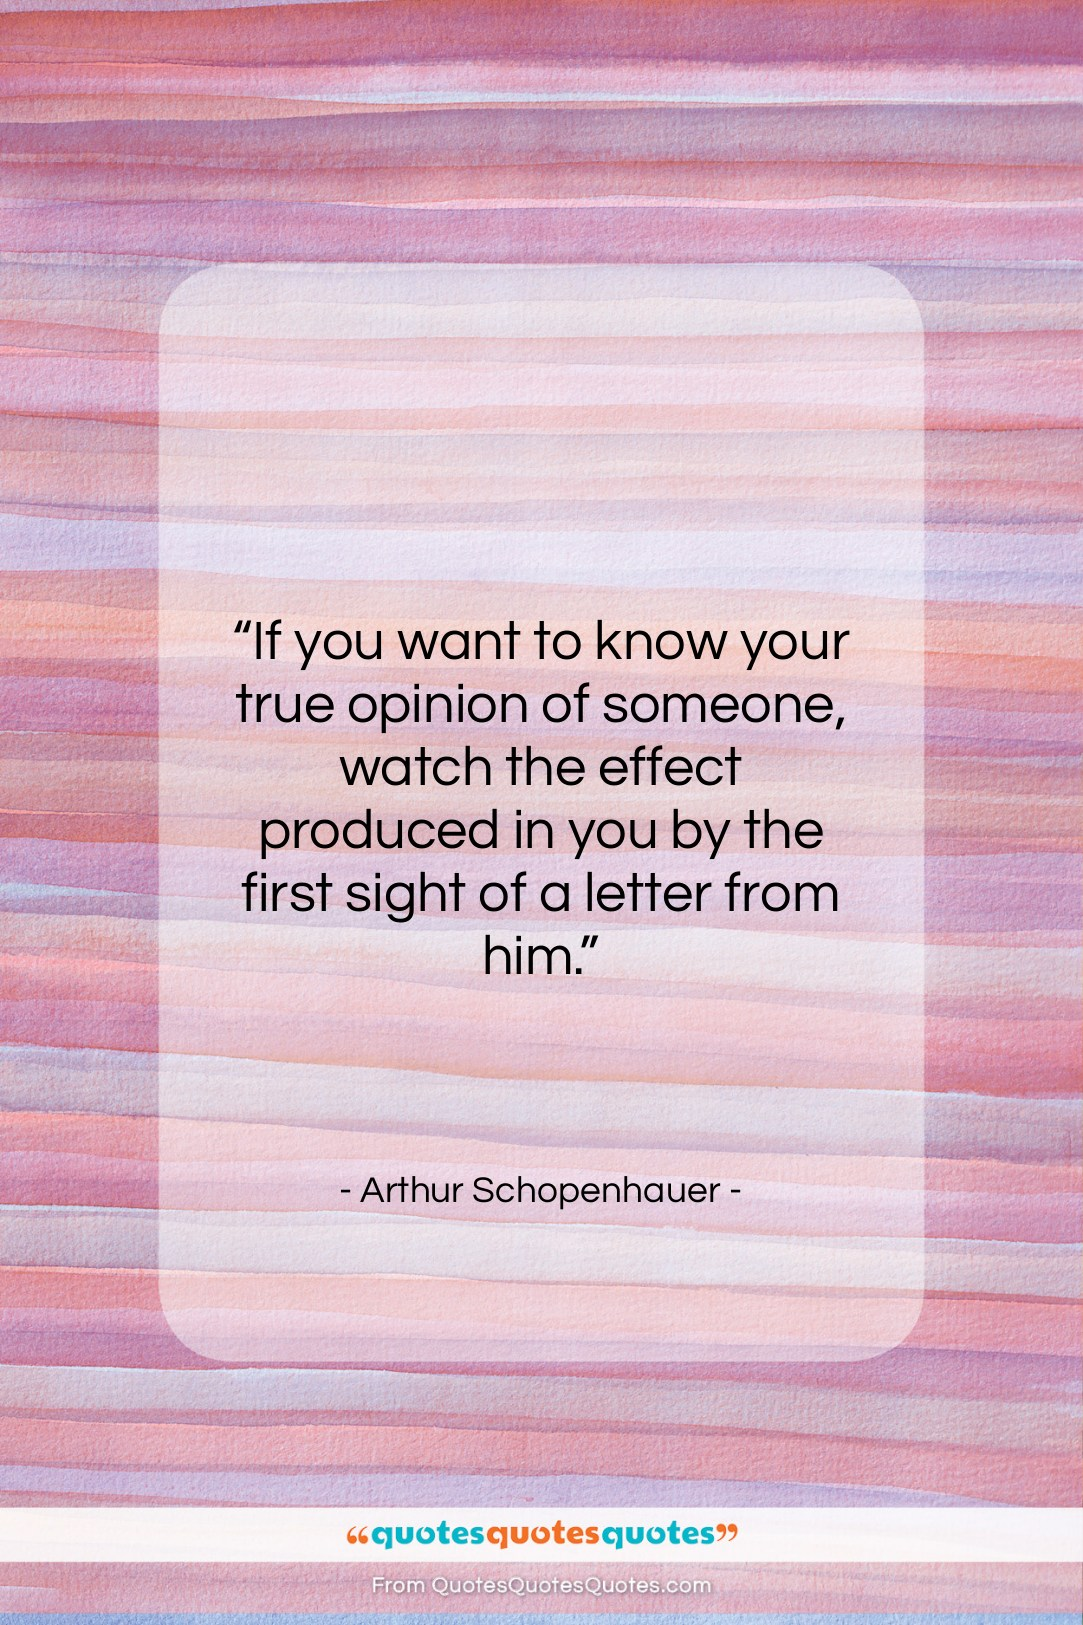 """Arthur Schopenhauer quote: """"If you want to know your true…""""- at QuotesQuotesQuotes.com"""